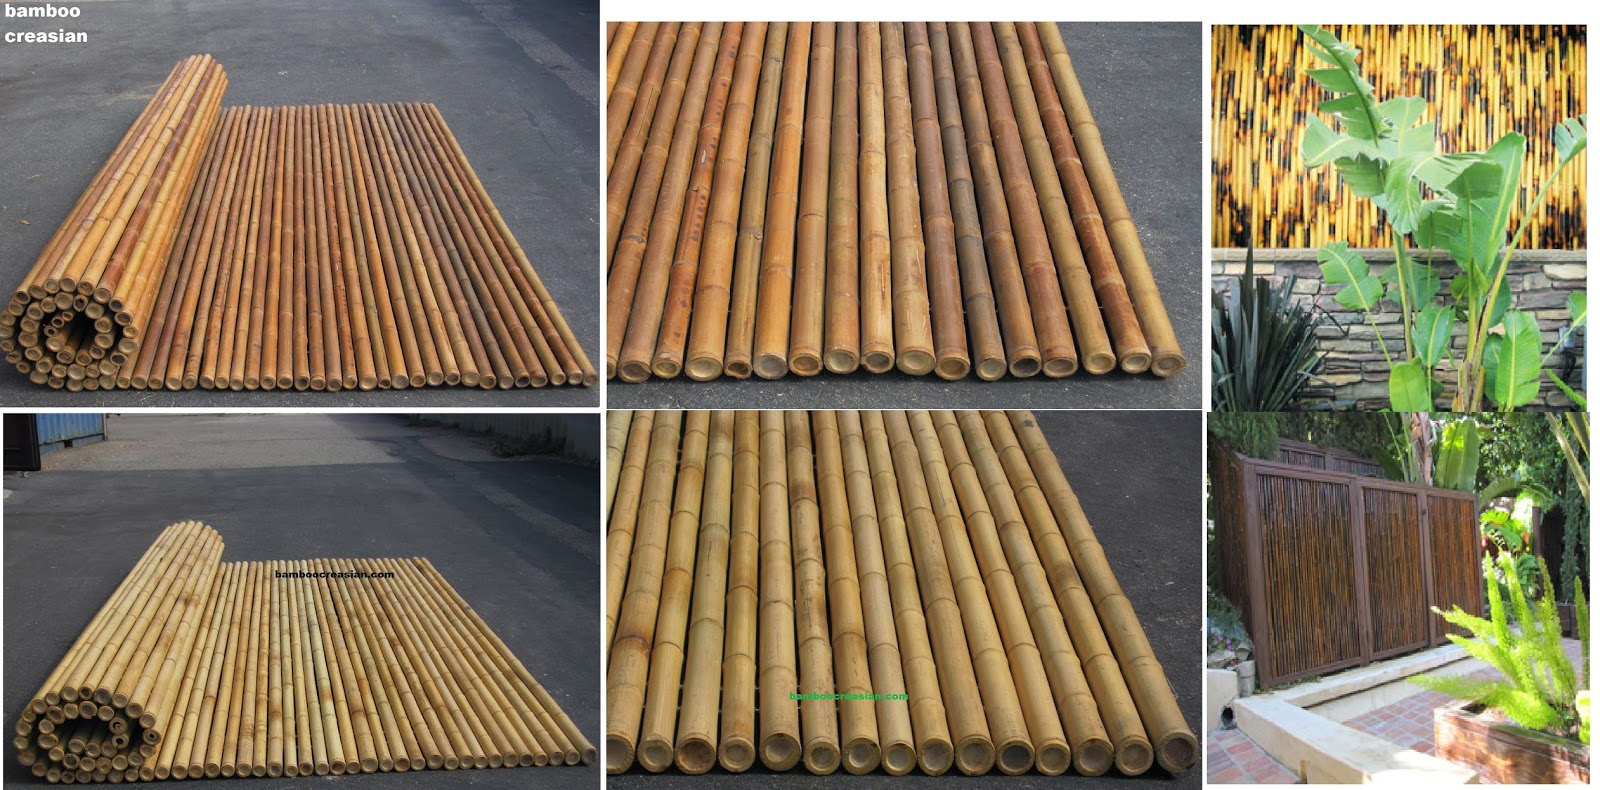 Creasians fencing 6ft bamboo fencing rolls 1dia 8ft 2buy bamboo fencecarbonized colored6ft 1dia bamboo fencinghighest qualitydurabilitysturdyheavy duty weight 4 garden fences best deals baanklon Image collections